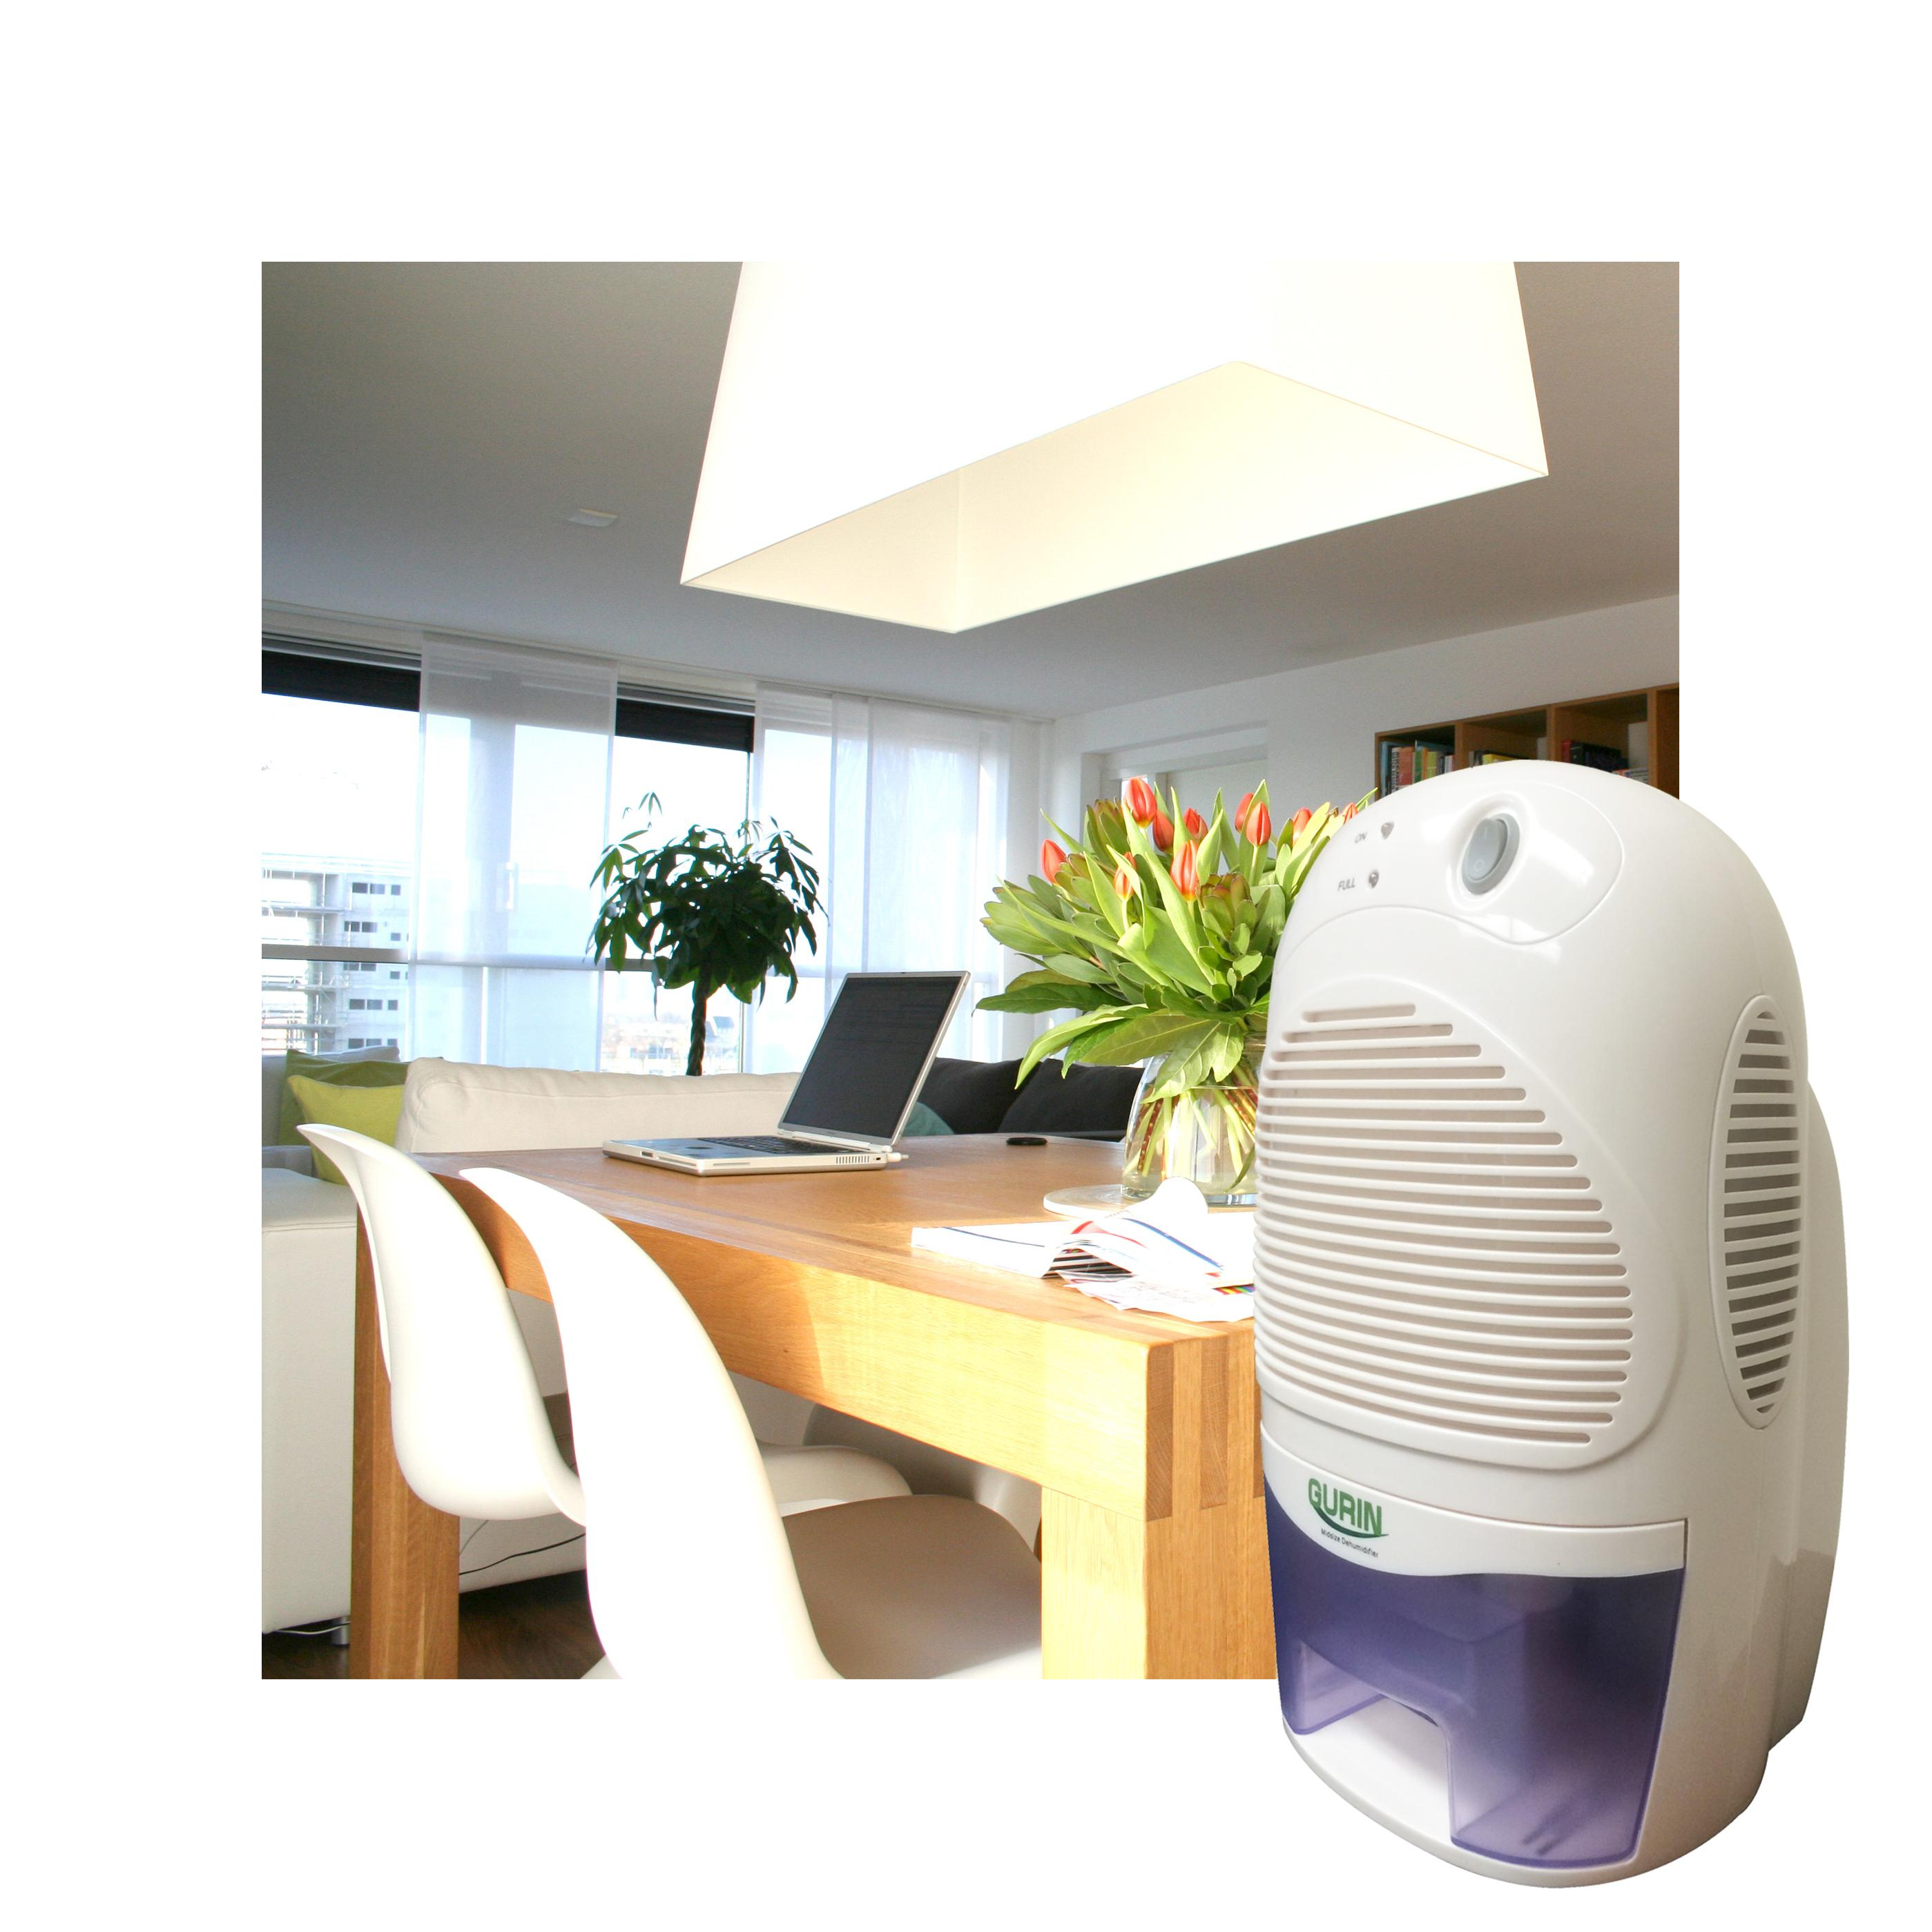 310 Mid Size Electric Dehumidifier with 1500ml Tank: Home & Kitchen #A0652B